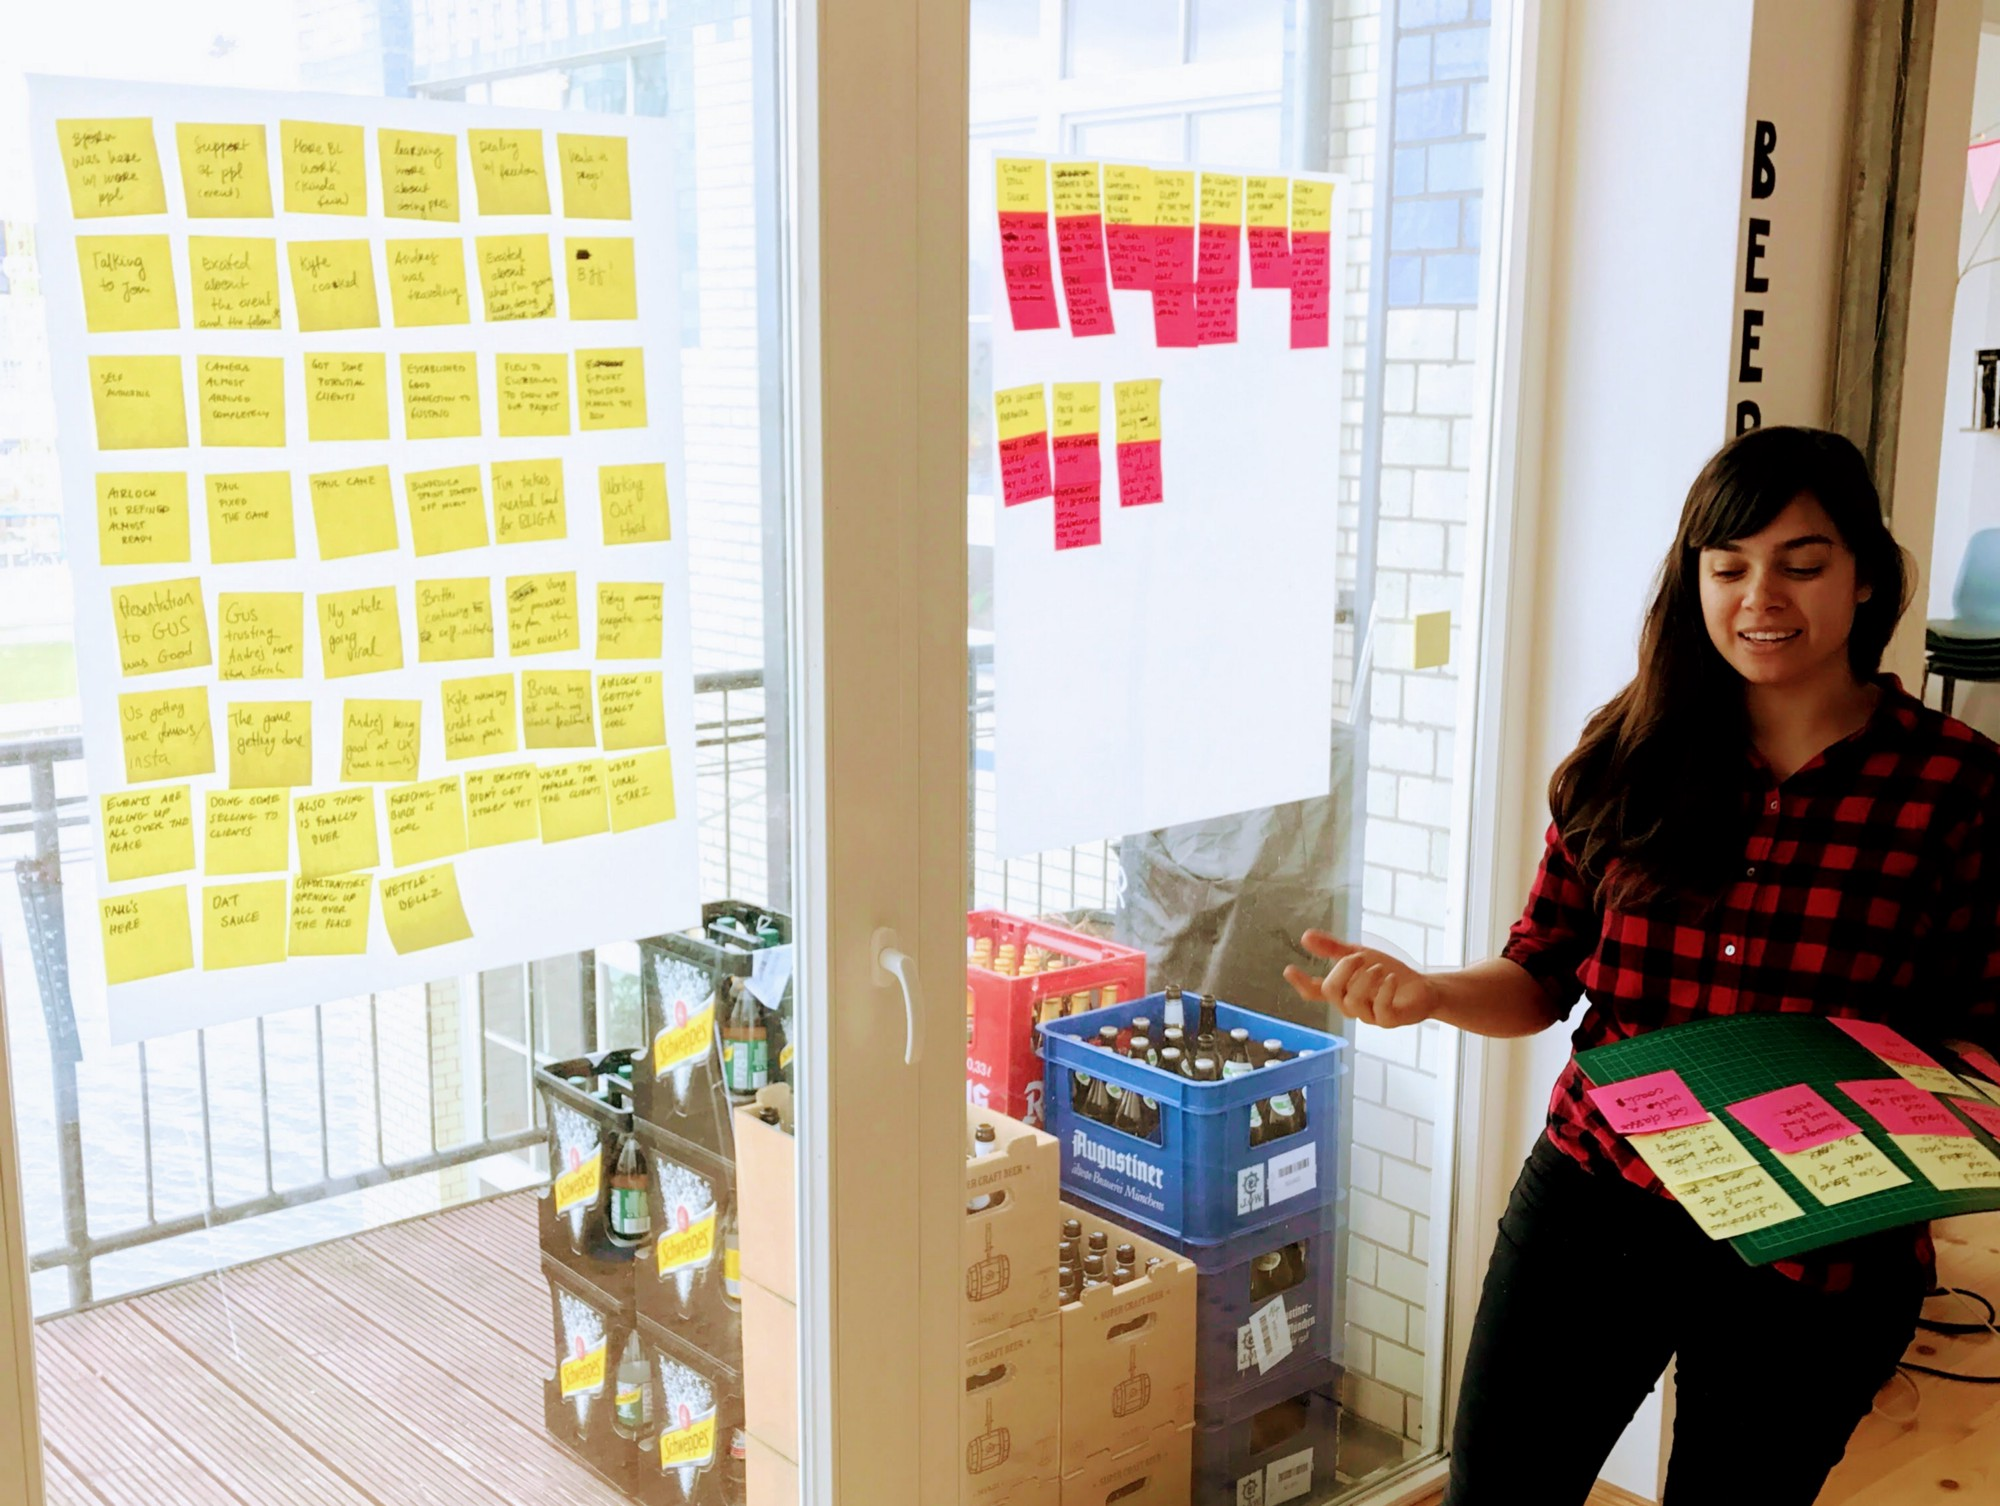 Use this exercise to solve any Product Design Challenge